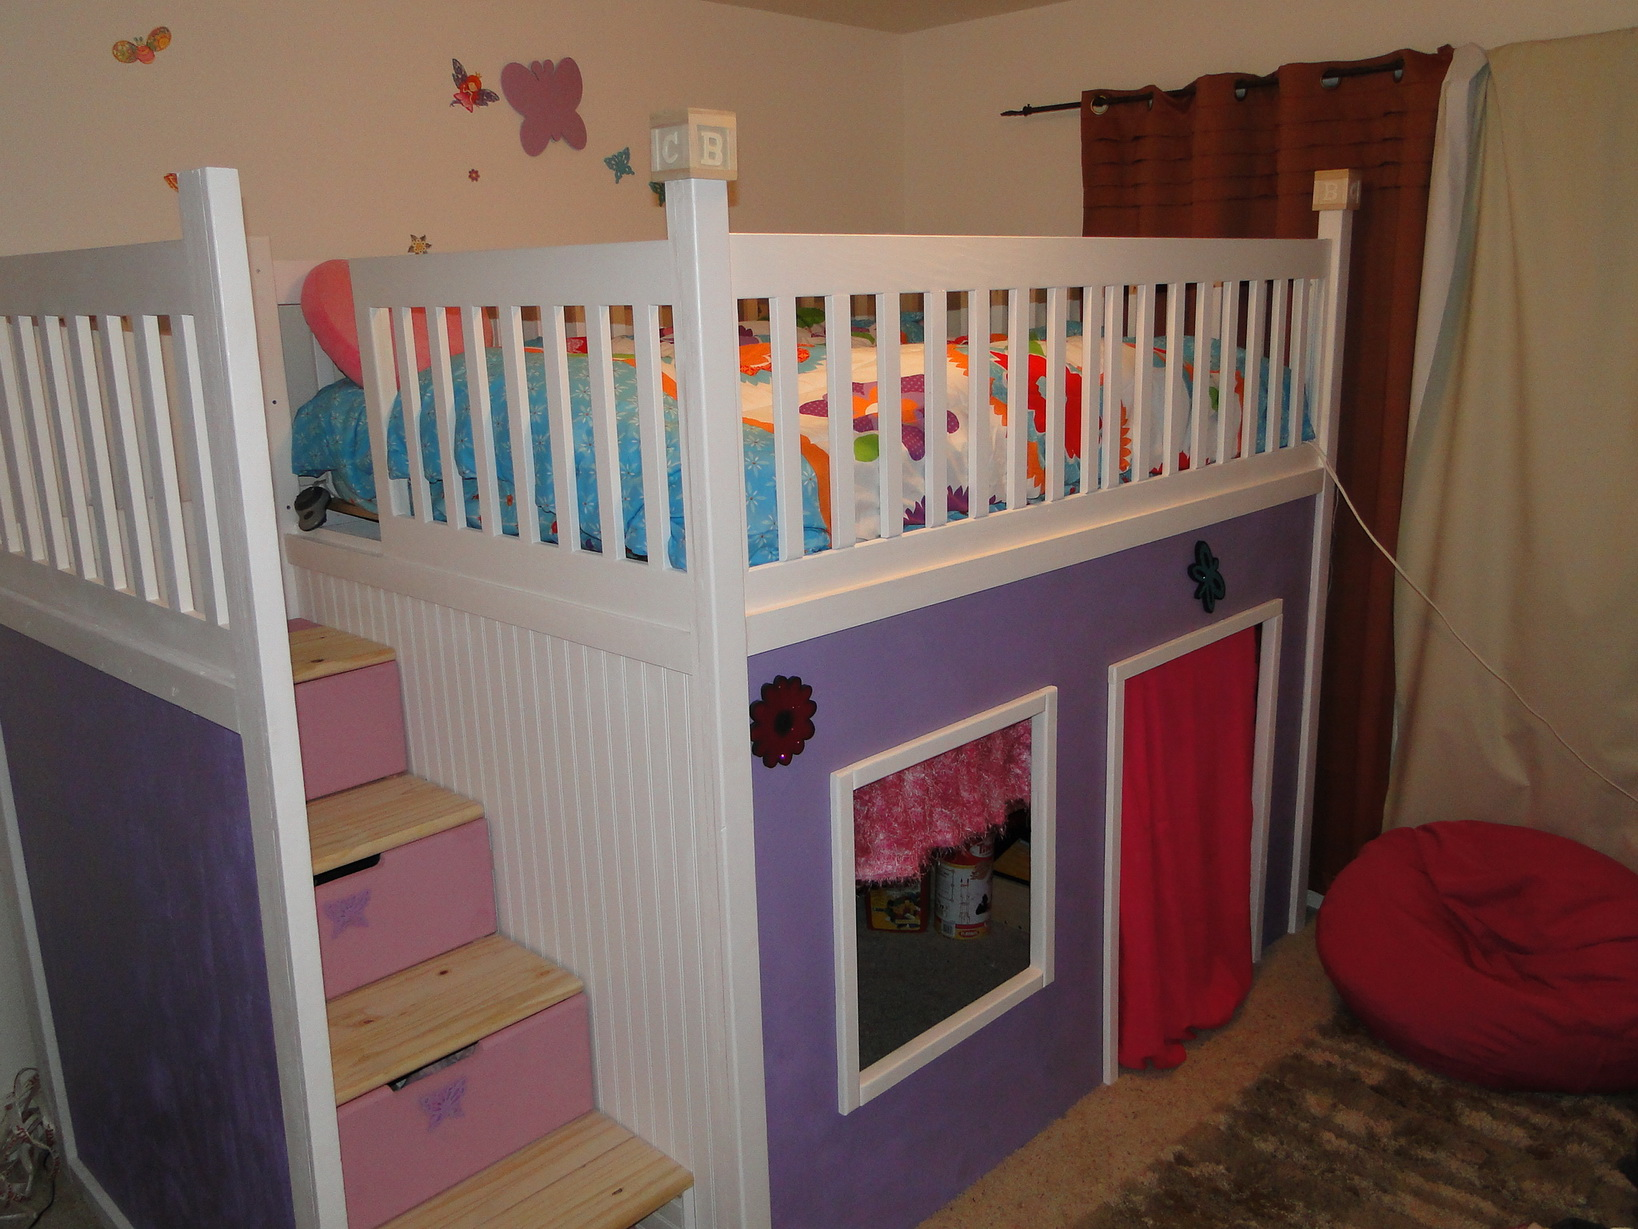 Bunk Bed Playhouse Plans dog cat house plans Building PDF Plans ...